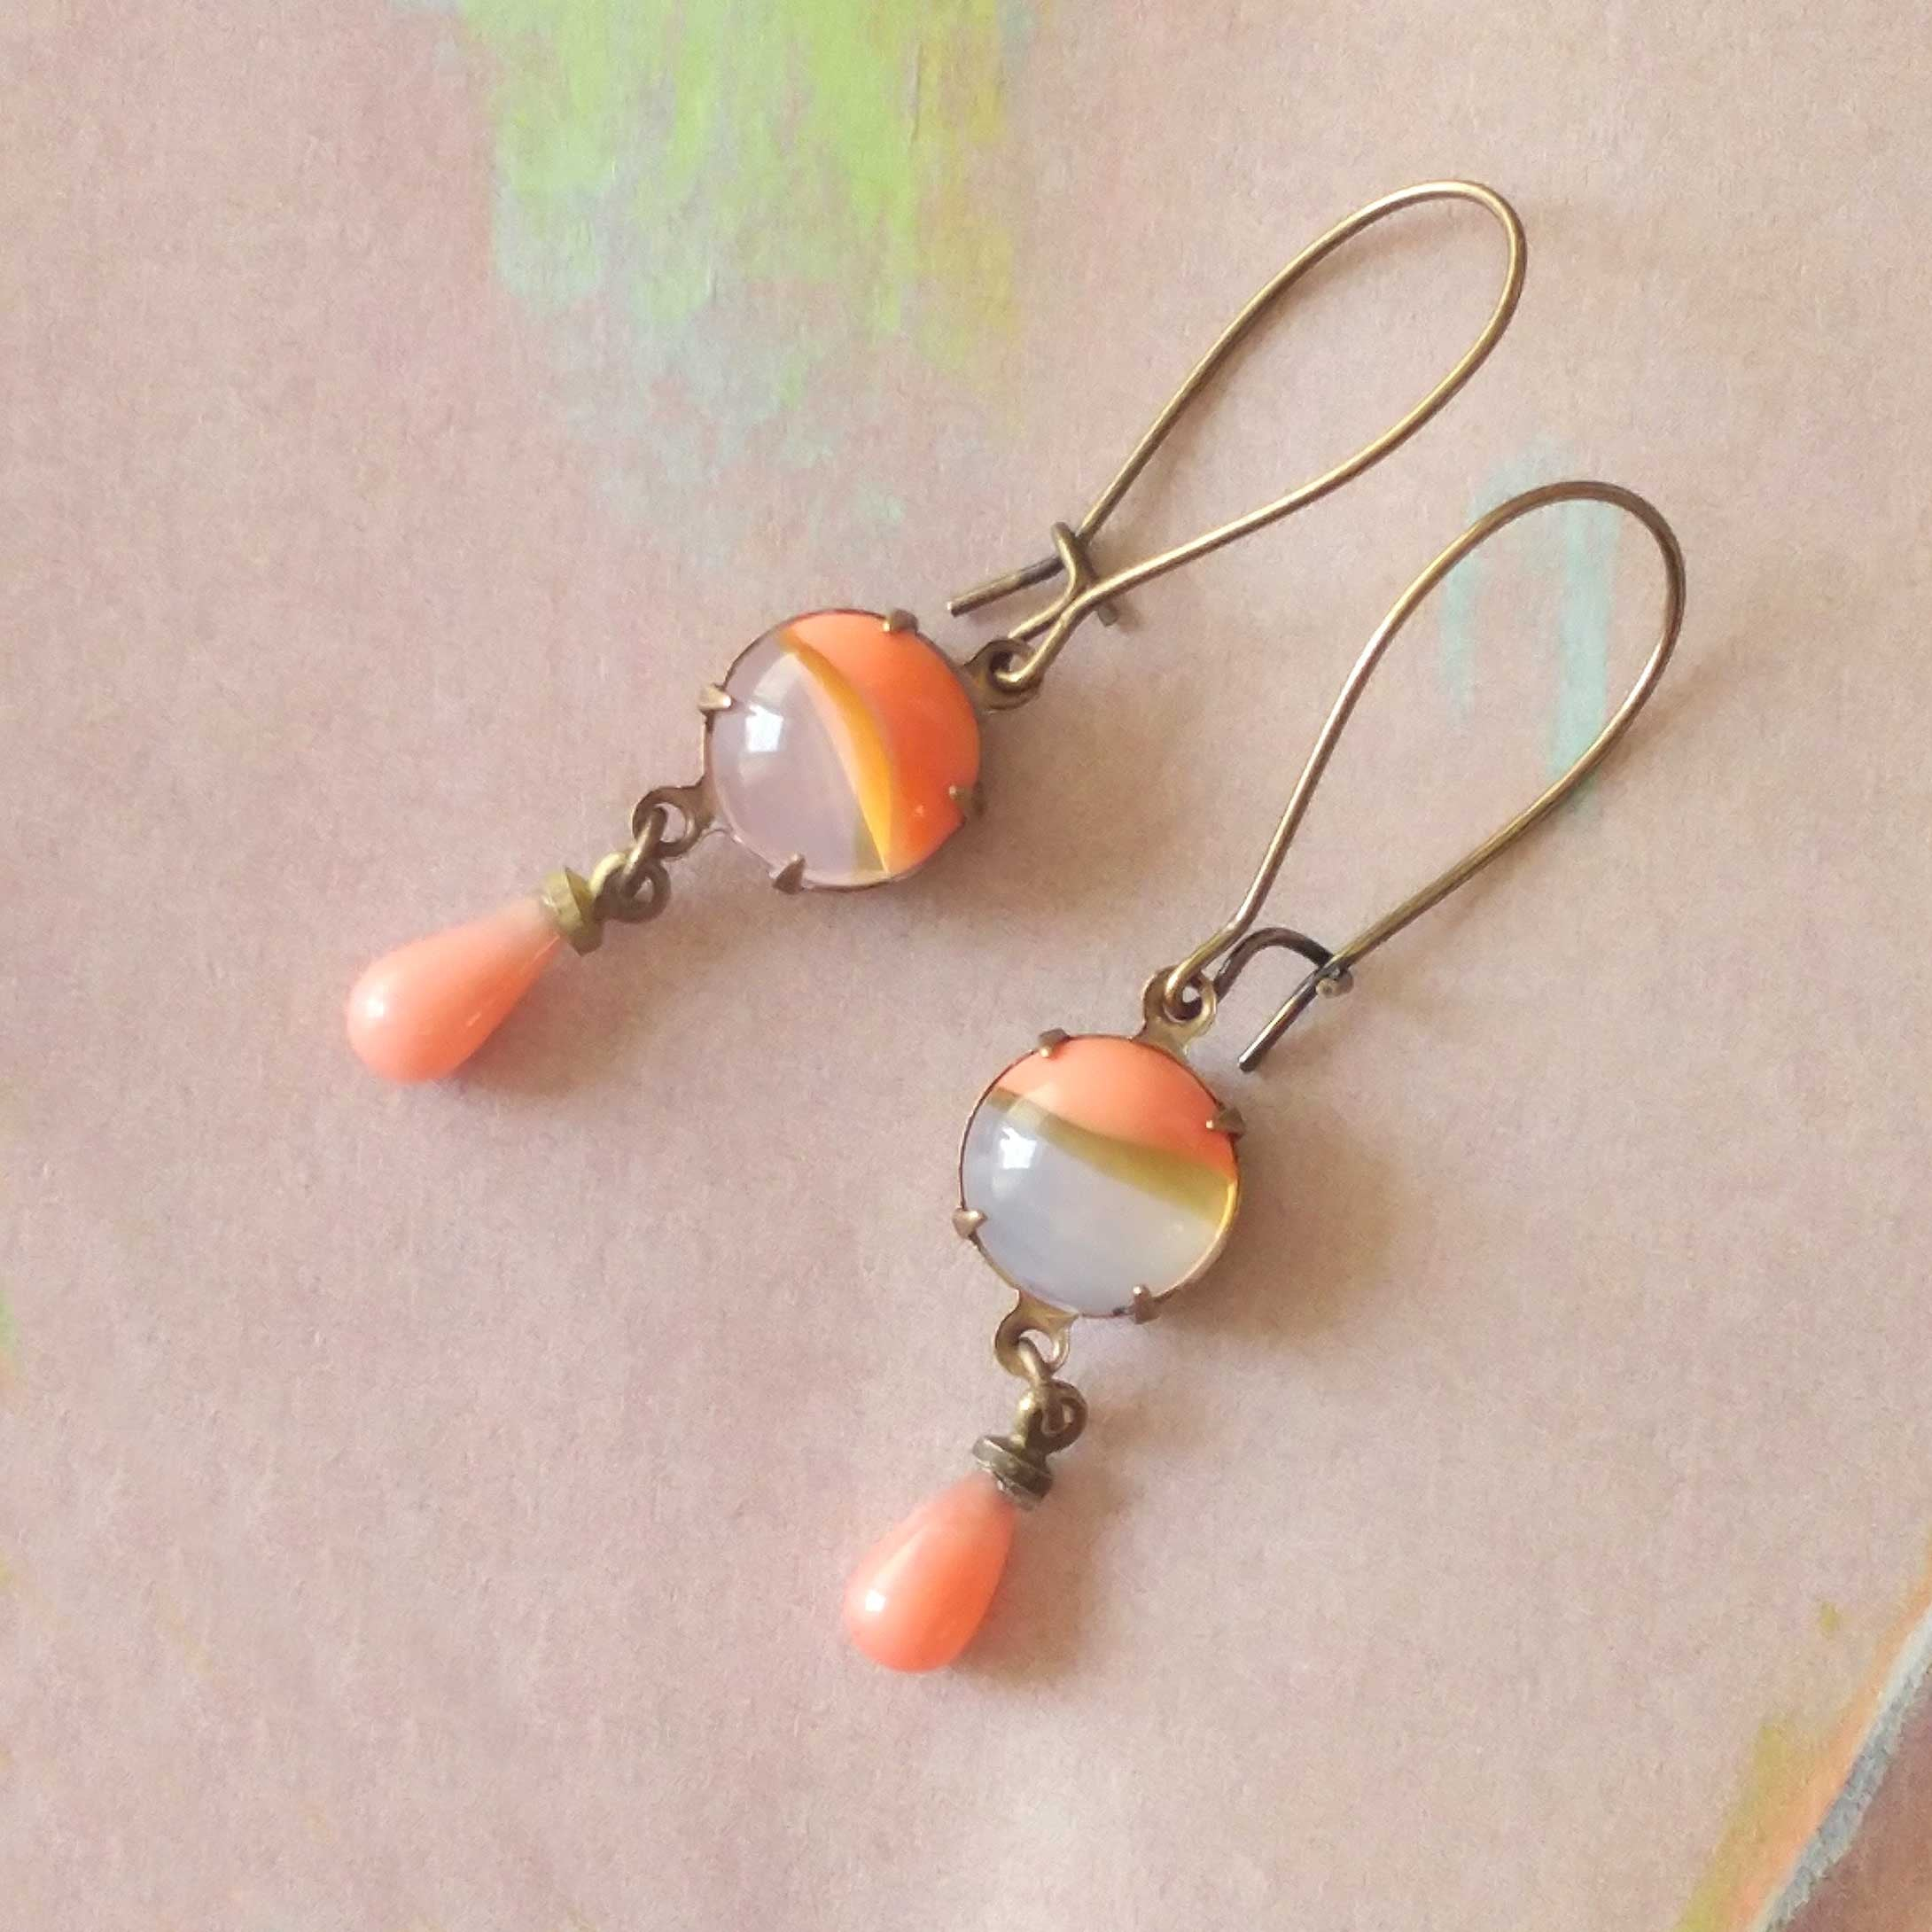 Daryl III Earrings (SD1272)